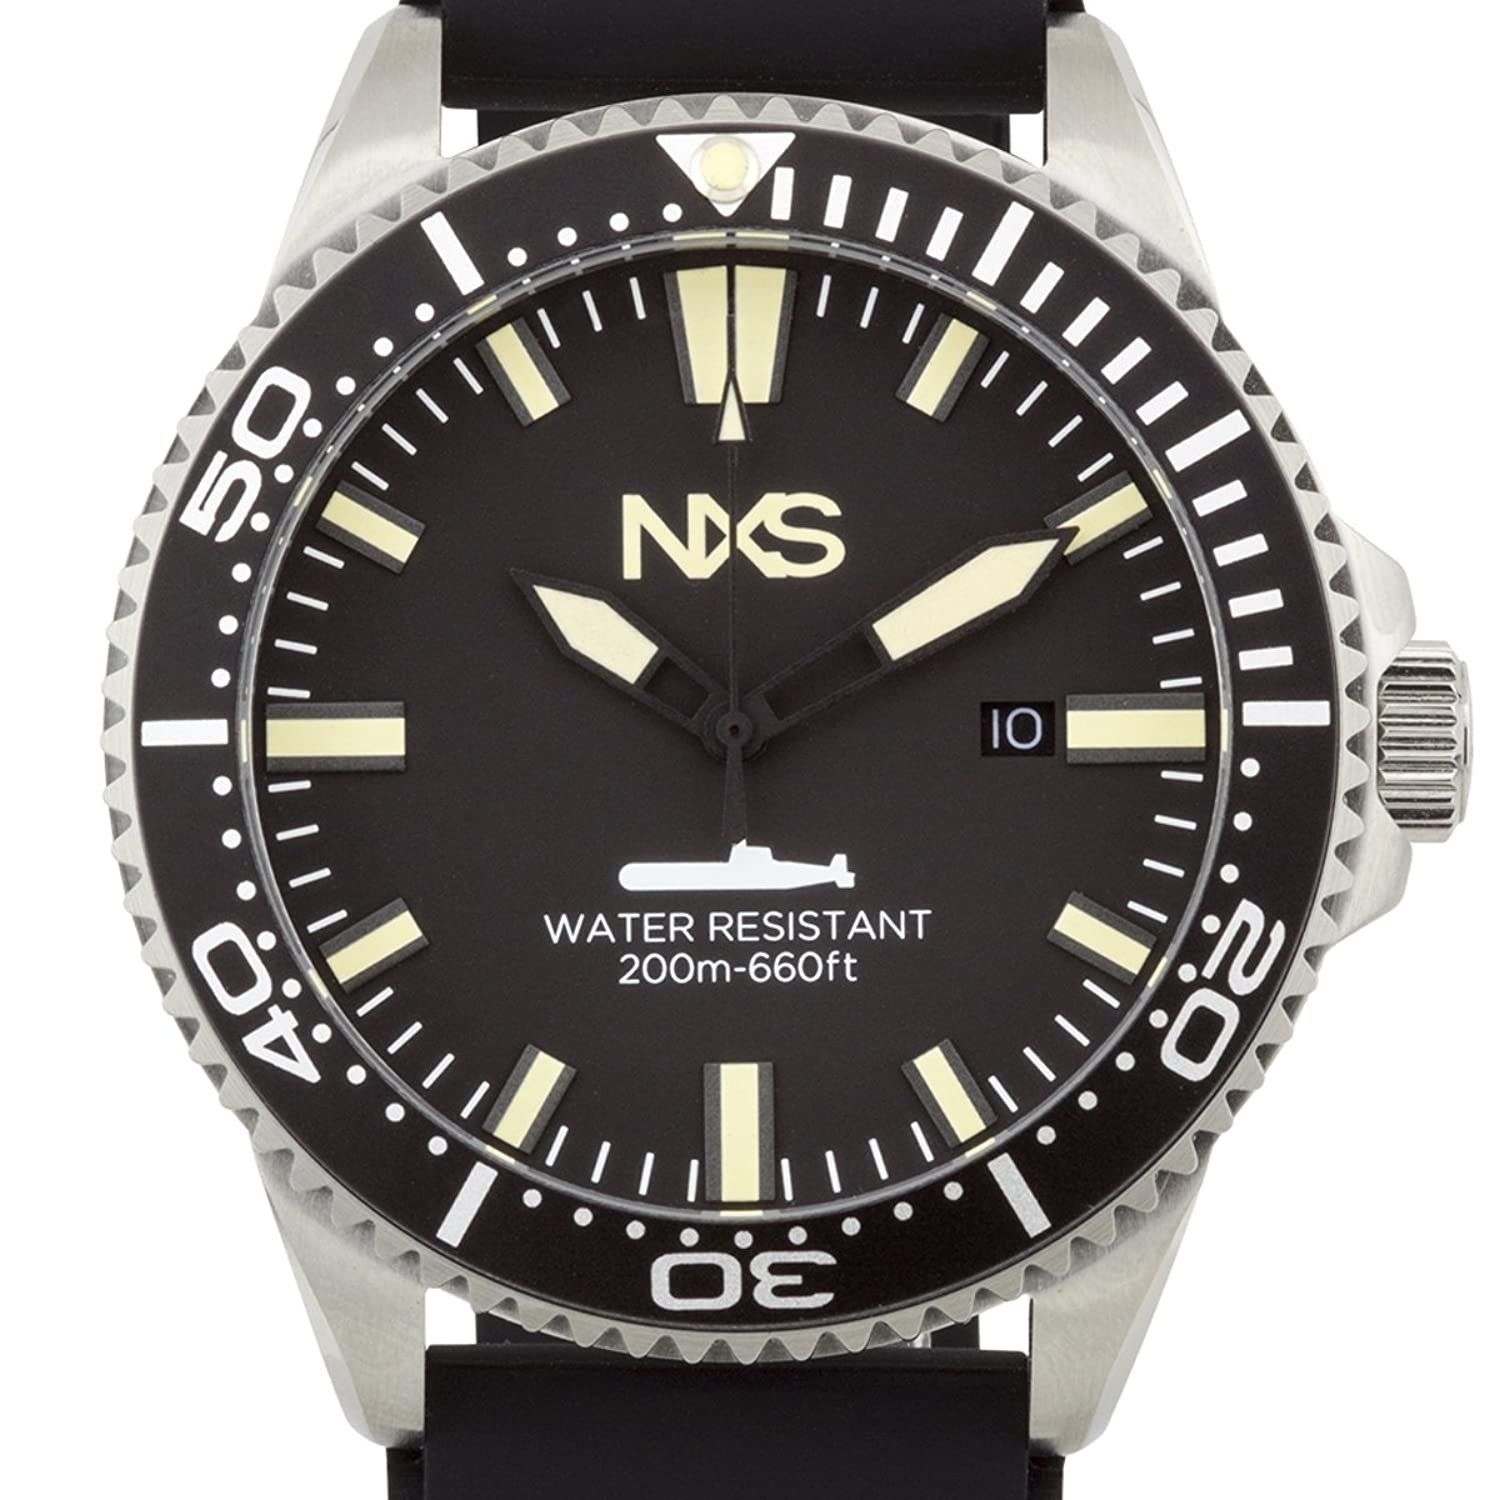 NXS Ocean Warrior Swiss Diver Mens Watch with Unidirectional Tachymeter Bezel